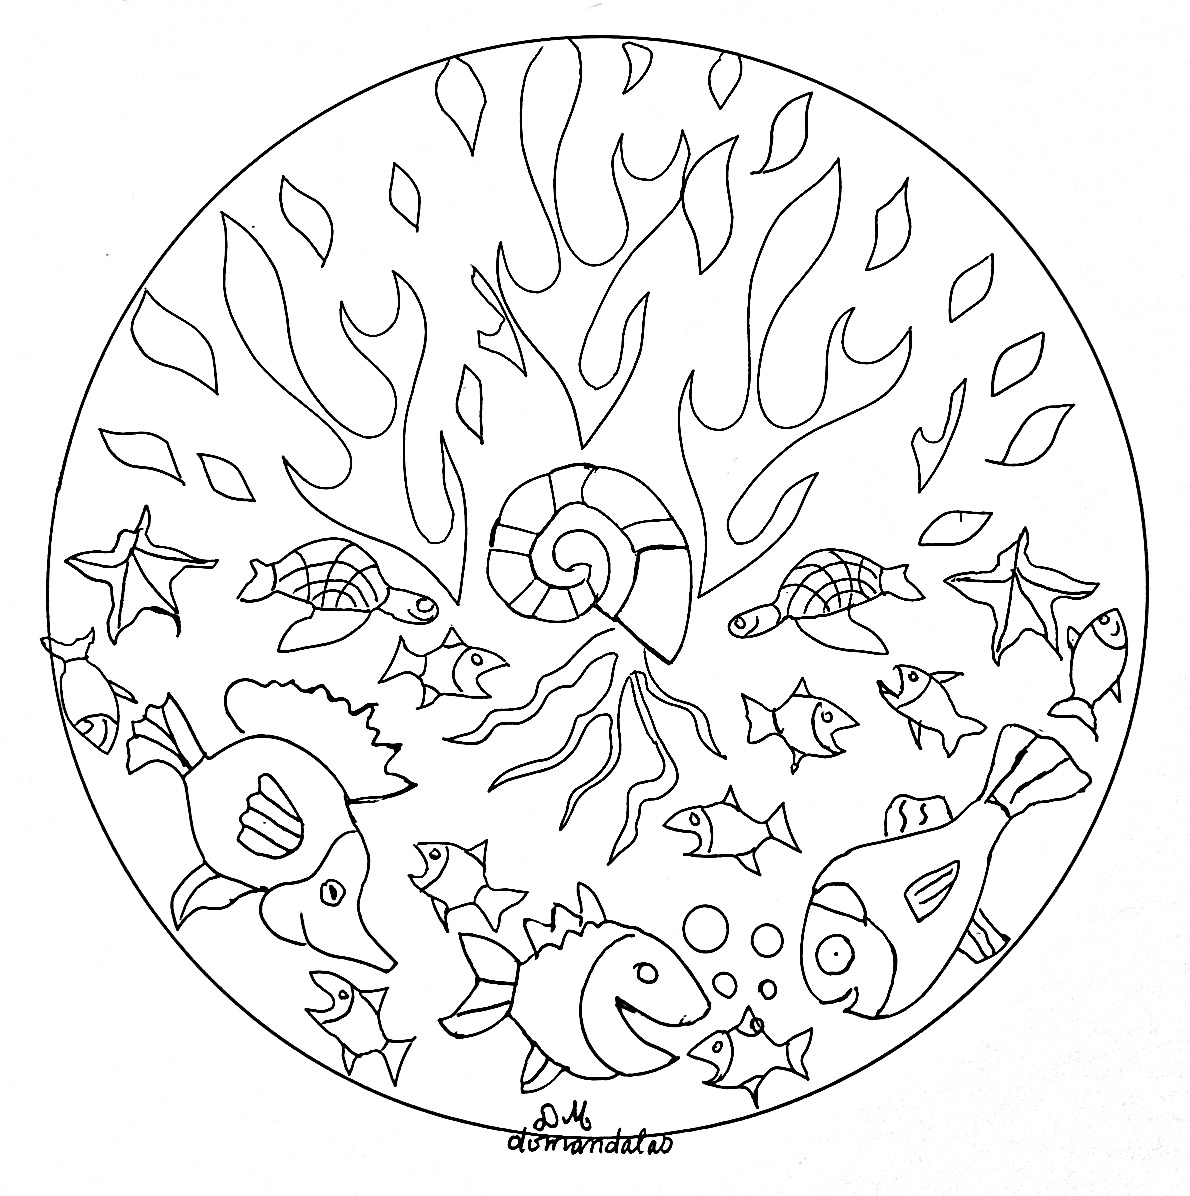 These seabed (shells, fish, sea...) are just waiting to be colored in this pretty original Mandala, it's up to you to print it and let your artistic sense guide you.